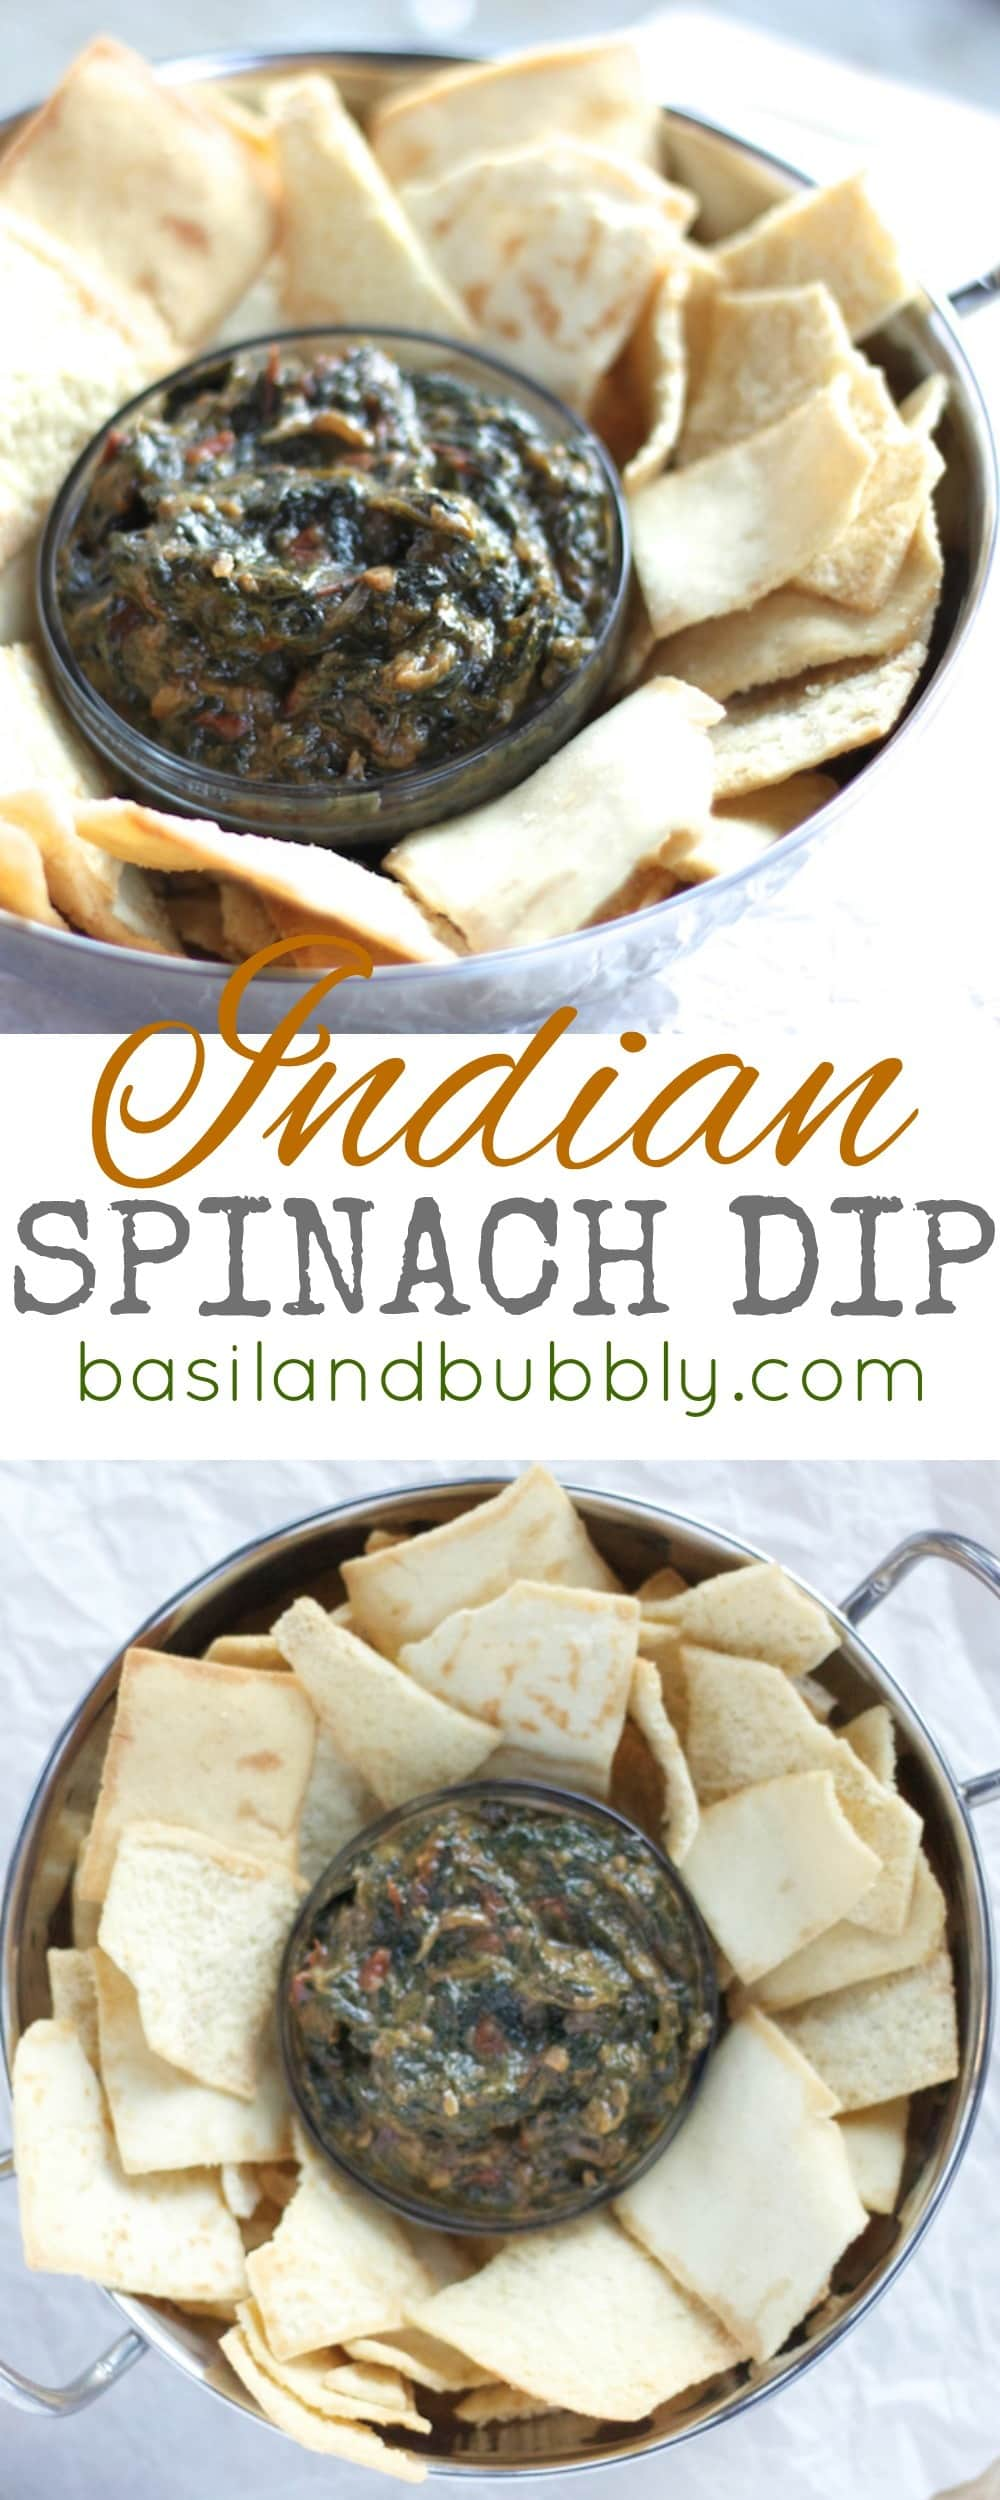 Rich, creamy, Indian inspired curried spinach dip to spice up a party appetizer spread